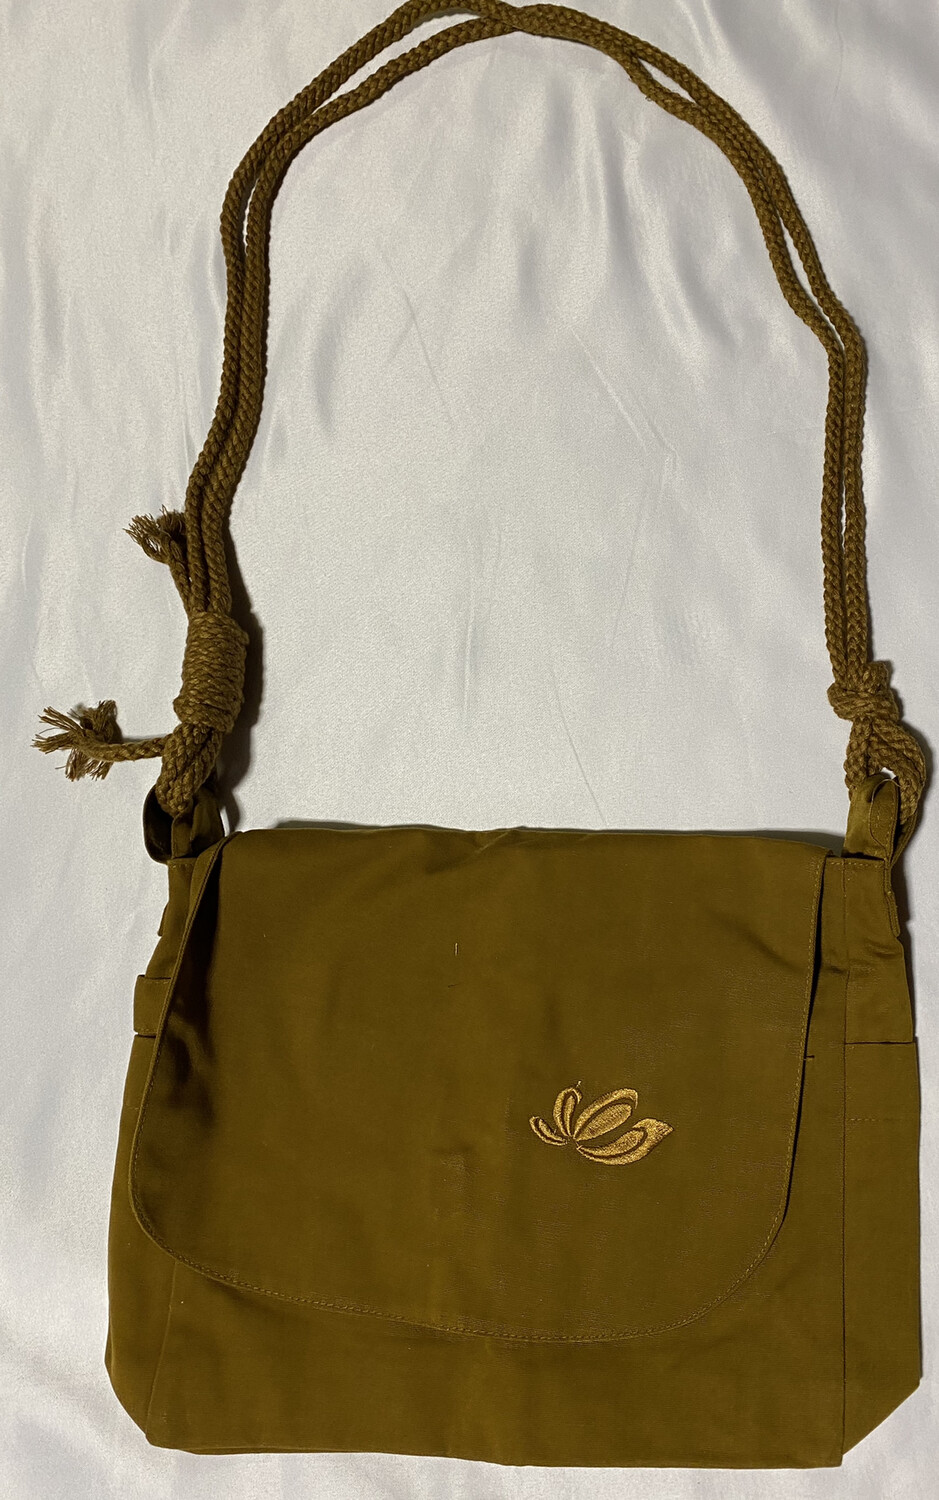 Monk Bag - Golden